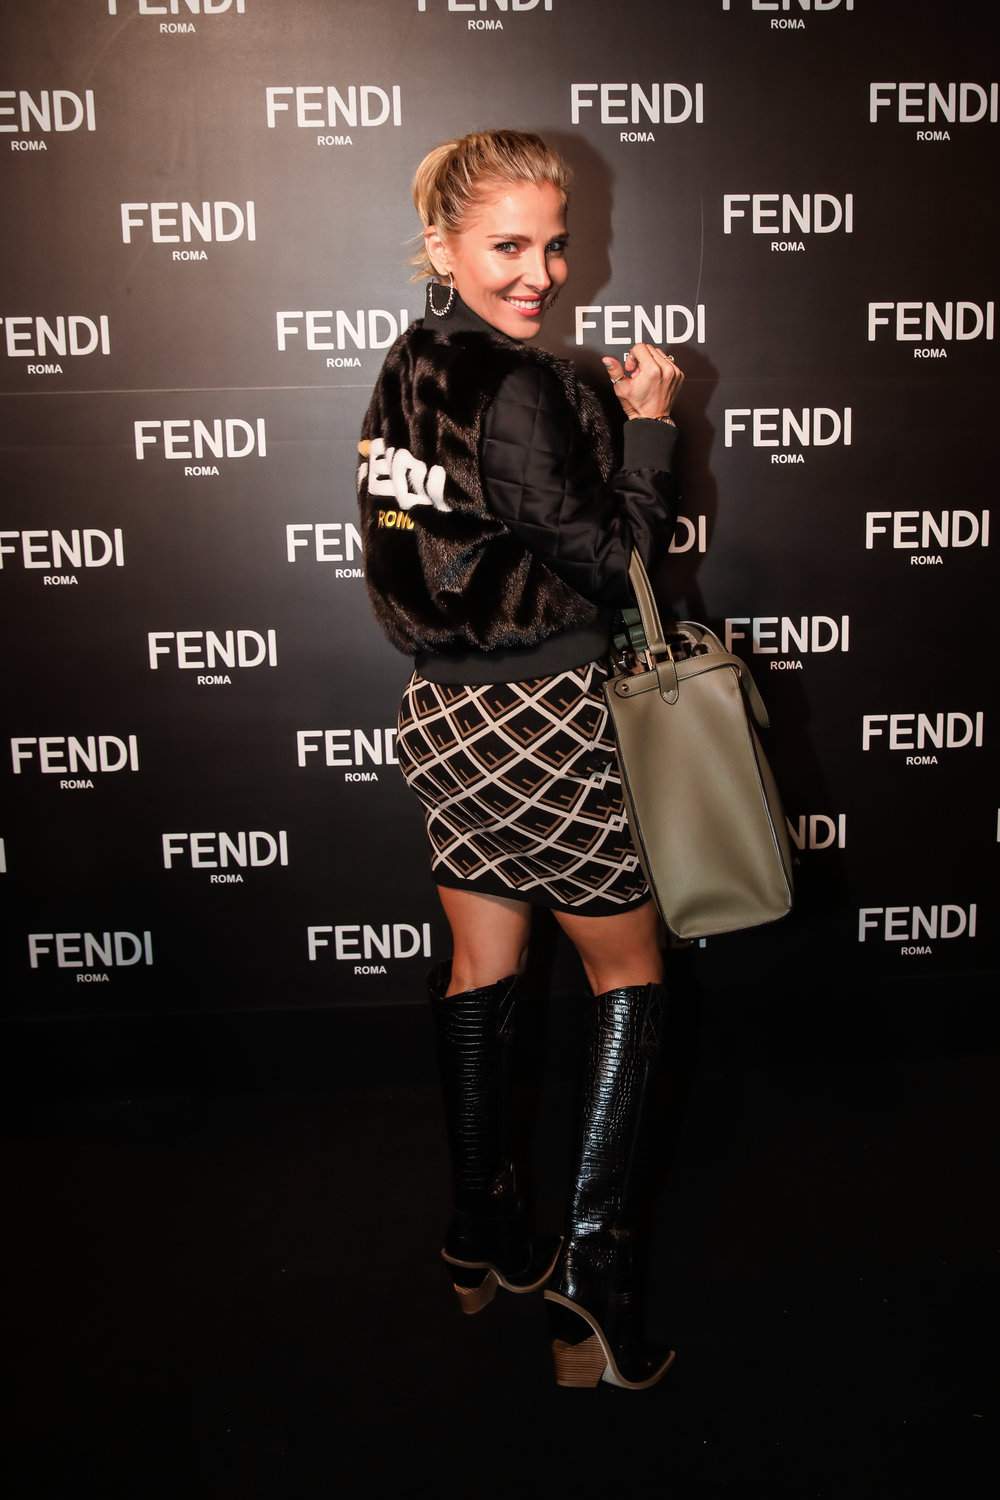 Elsa Pataky Fendi Collins Street Launch 30.8.18-3633.jpg